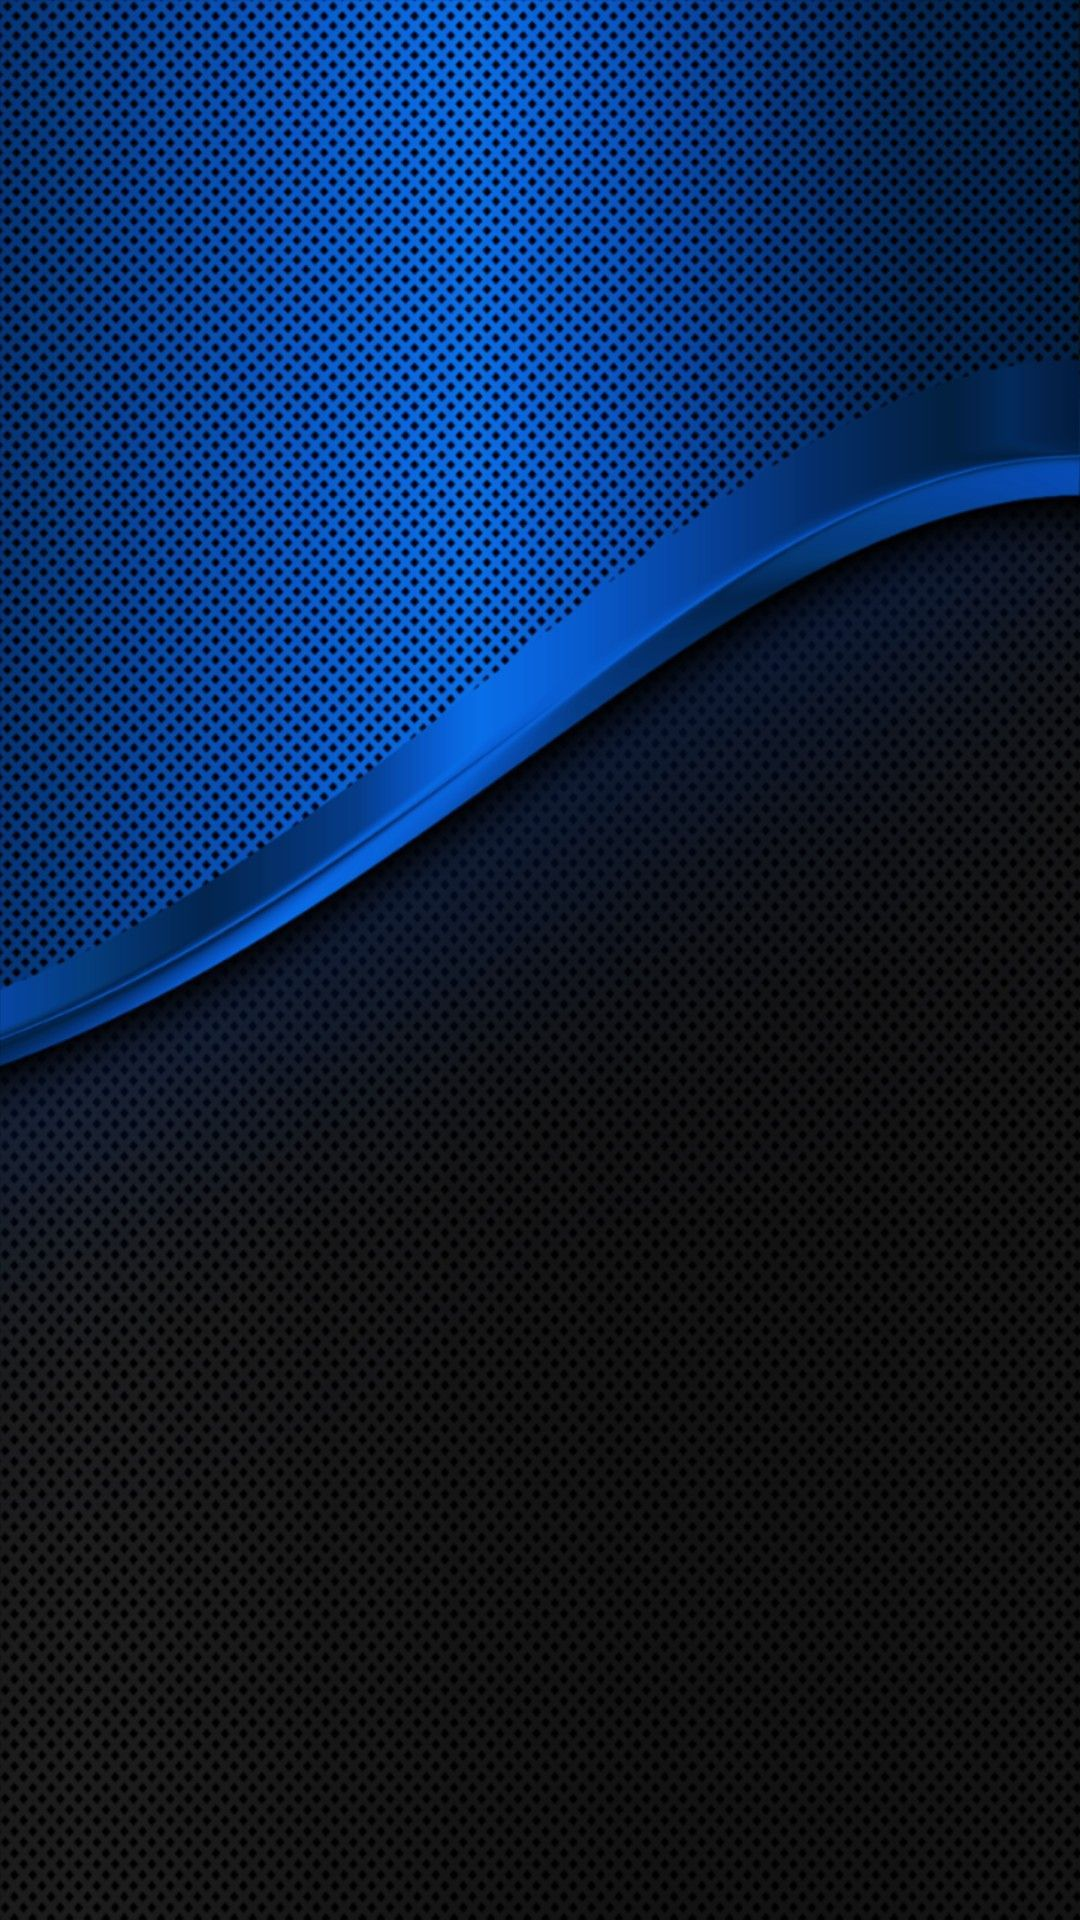 Blue Brushed Metal Android wallpaper blue, Pretty phone